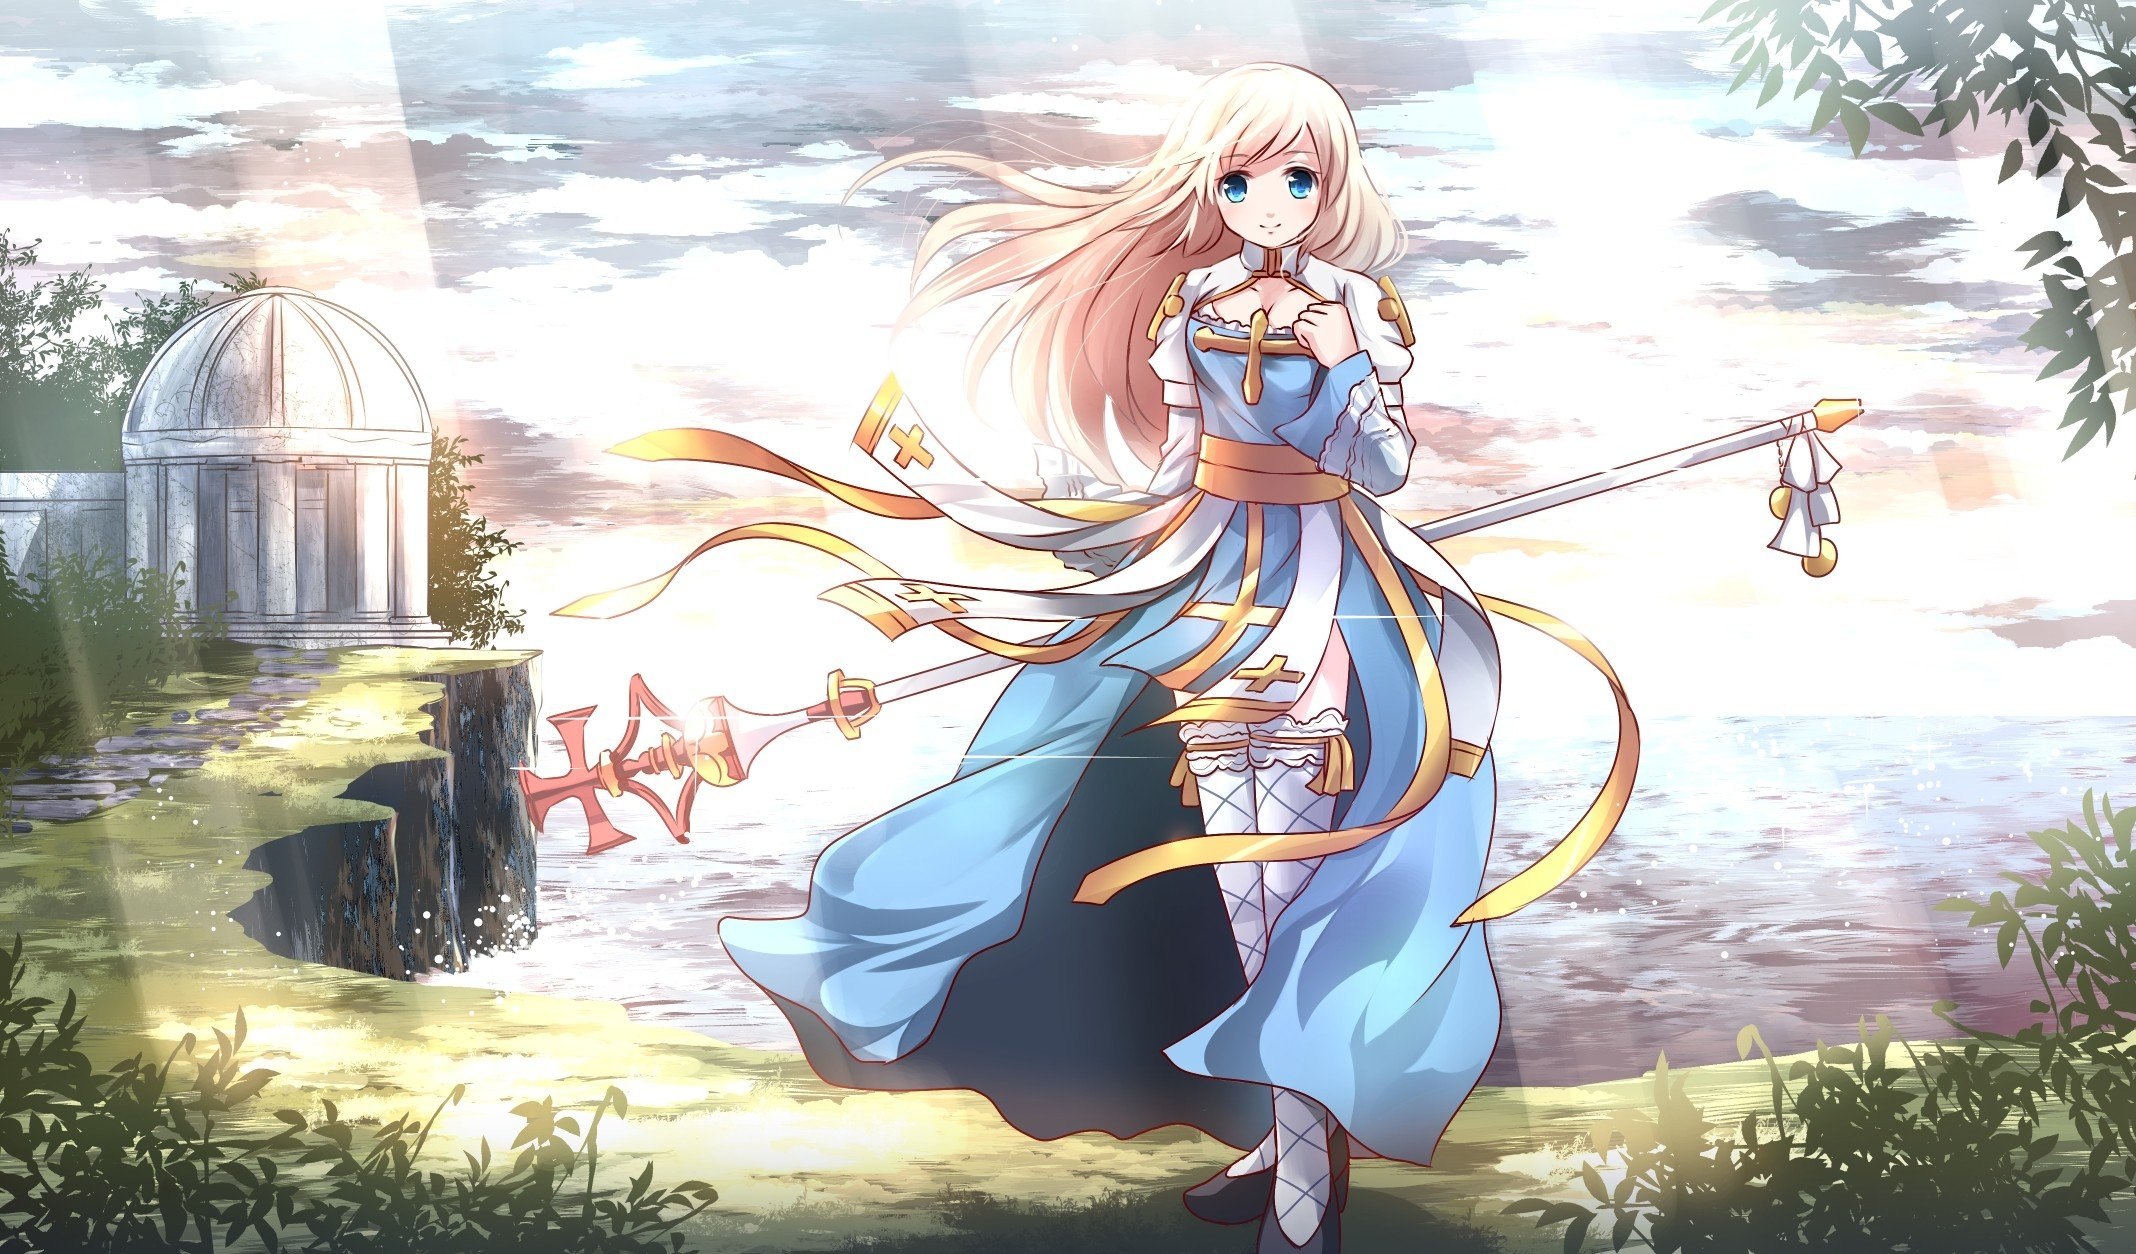 Anime anime girls original characters blonde long hair blue eyes thigh highs clouds hd wallpapers desktop and mobile images photos